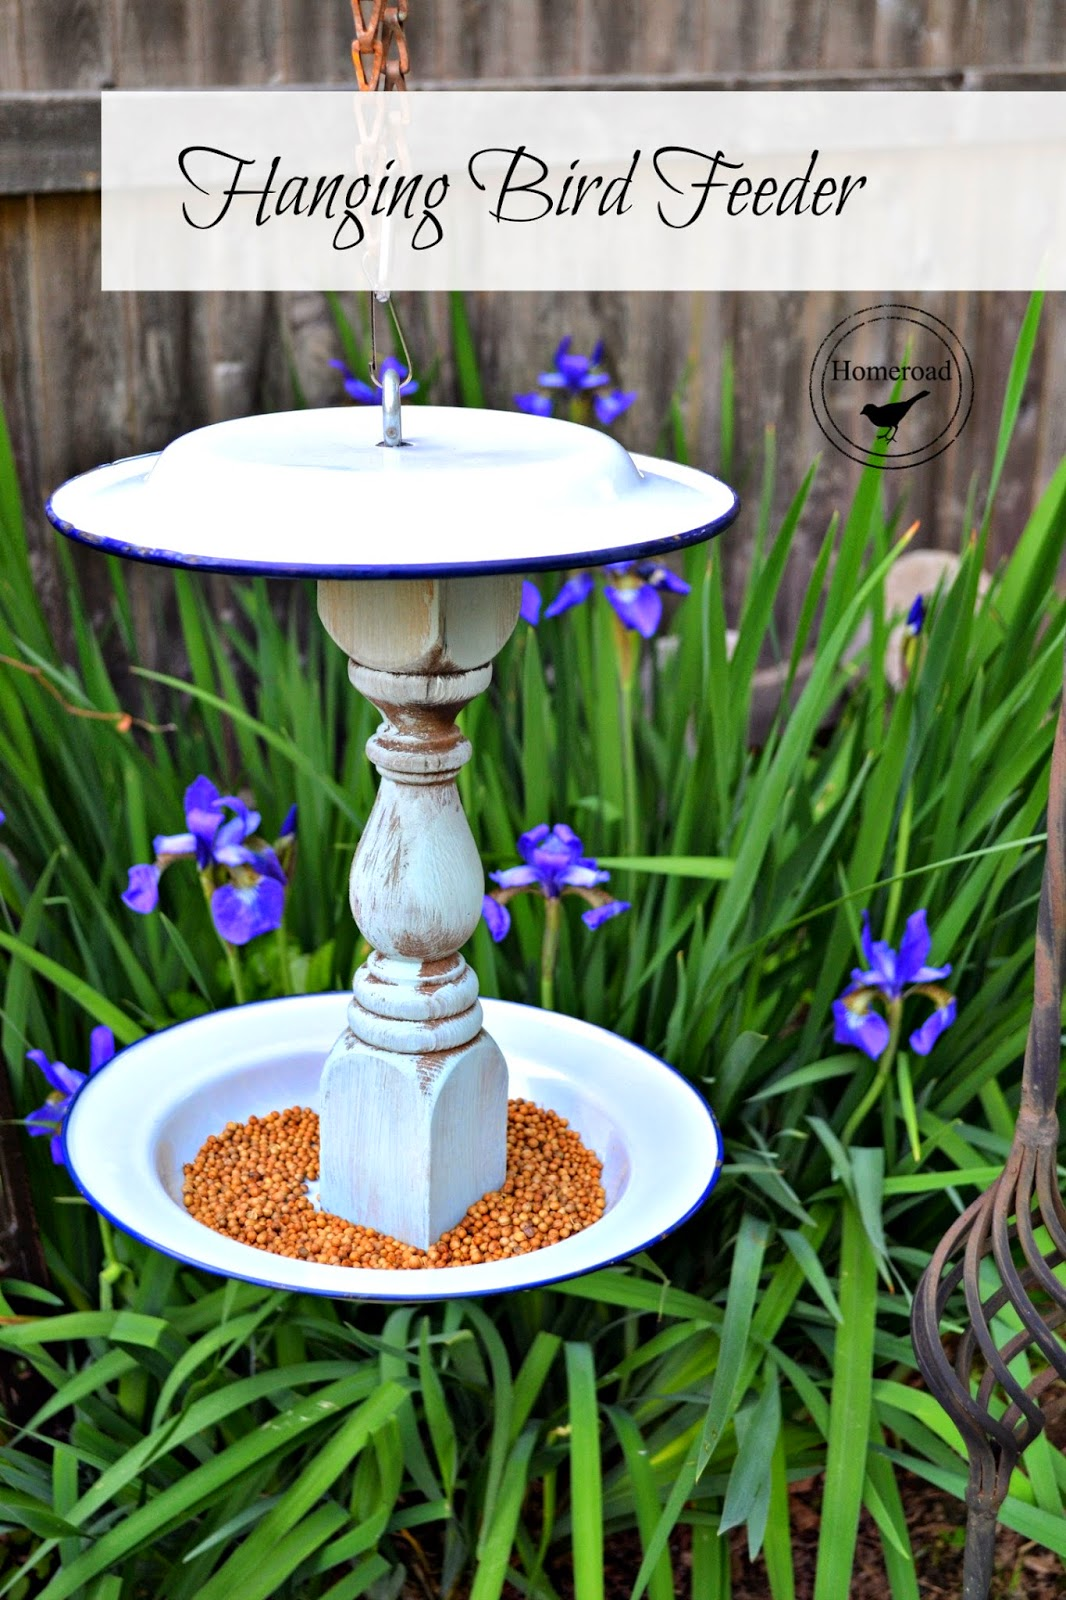 enamelware-bird-feeder-and-the-country-living-fair www.homeroad.net